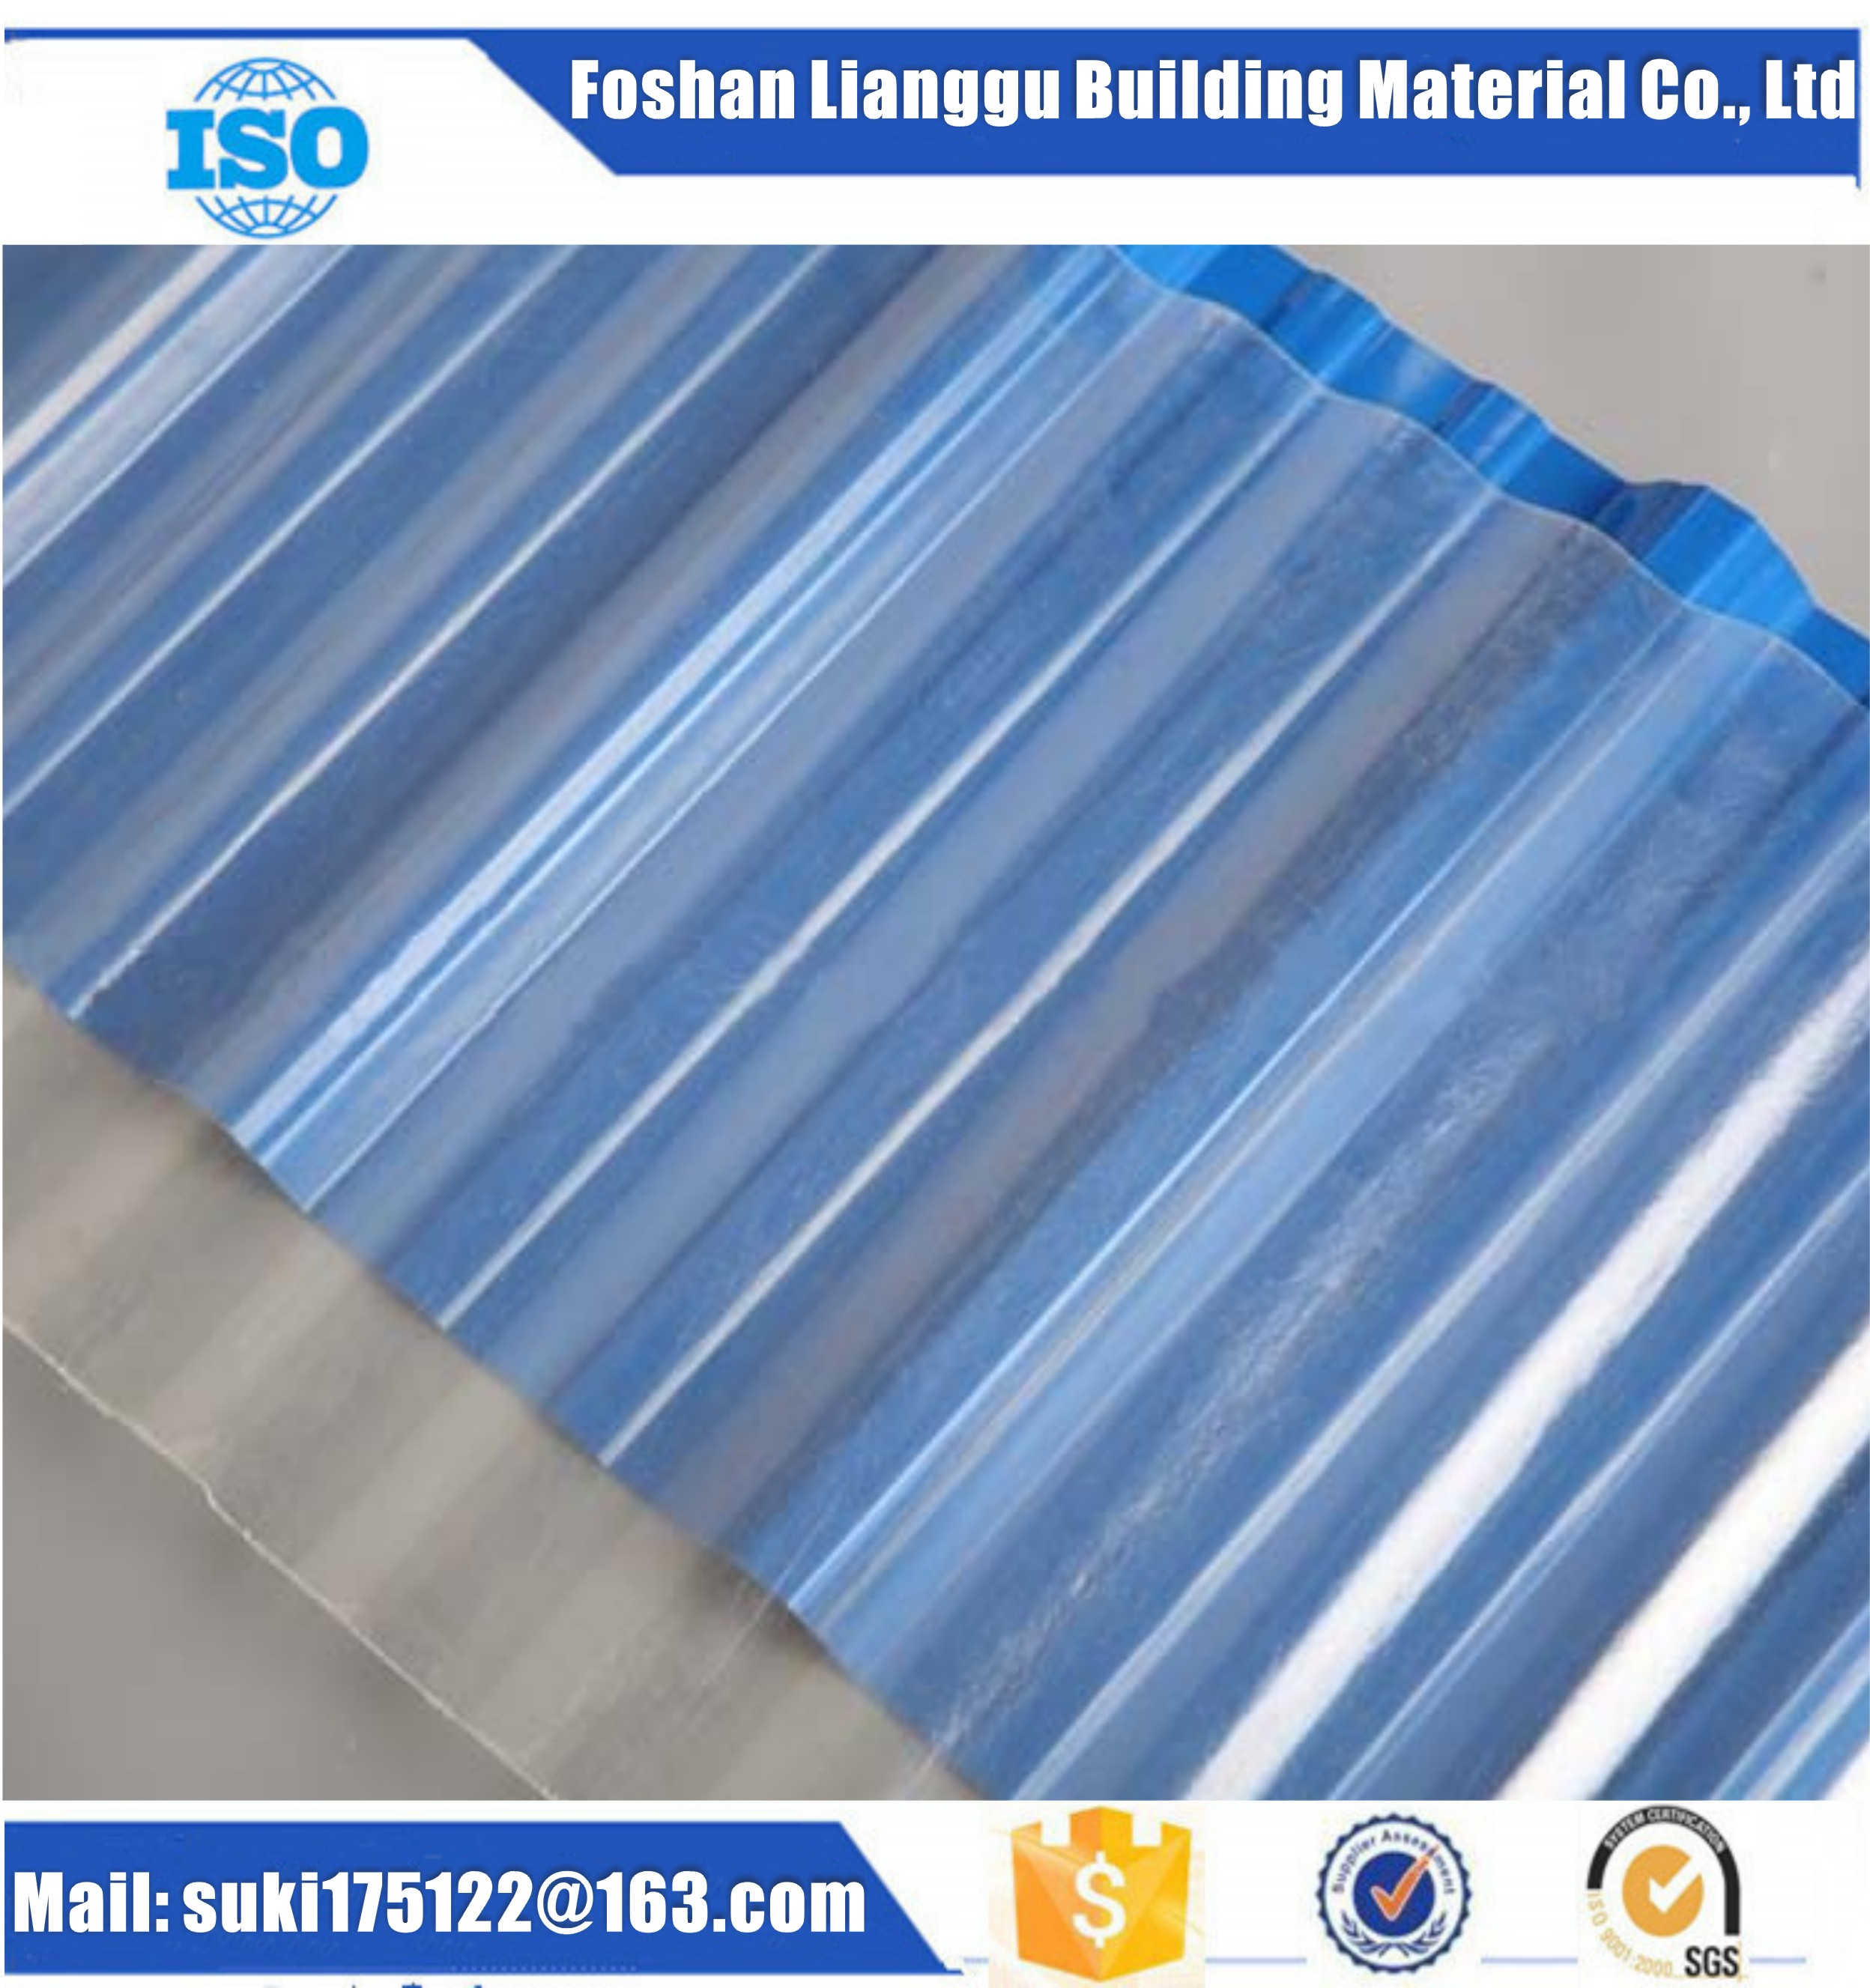 1.0mm Thickness Fiberglass Reinforced Polyester (FRP) Corrugated Roofing Sheet, Corrugated Board, Fi